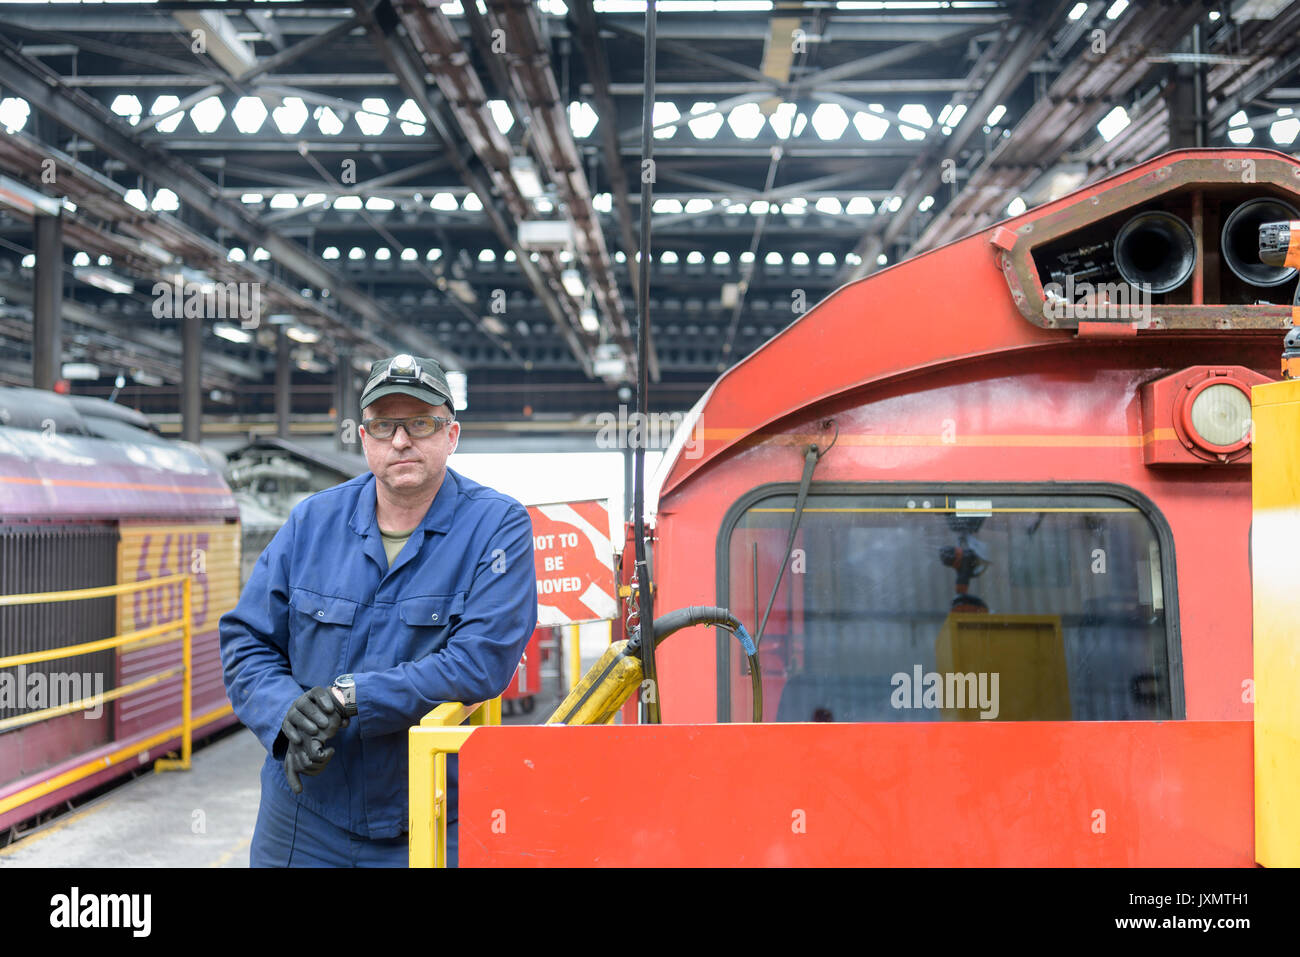 Portrait of locomotive engineer working in train works - Stock Image